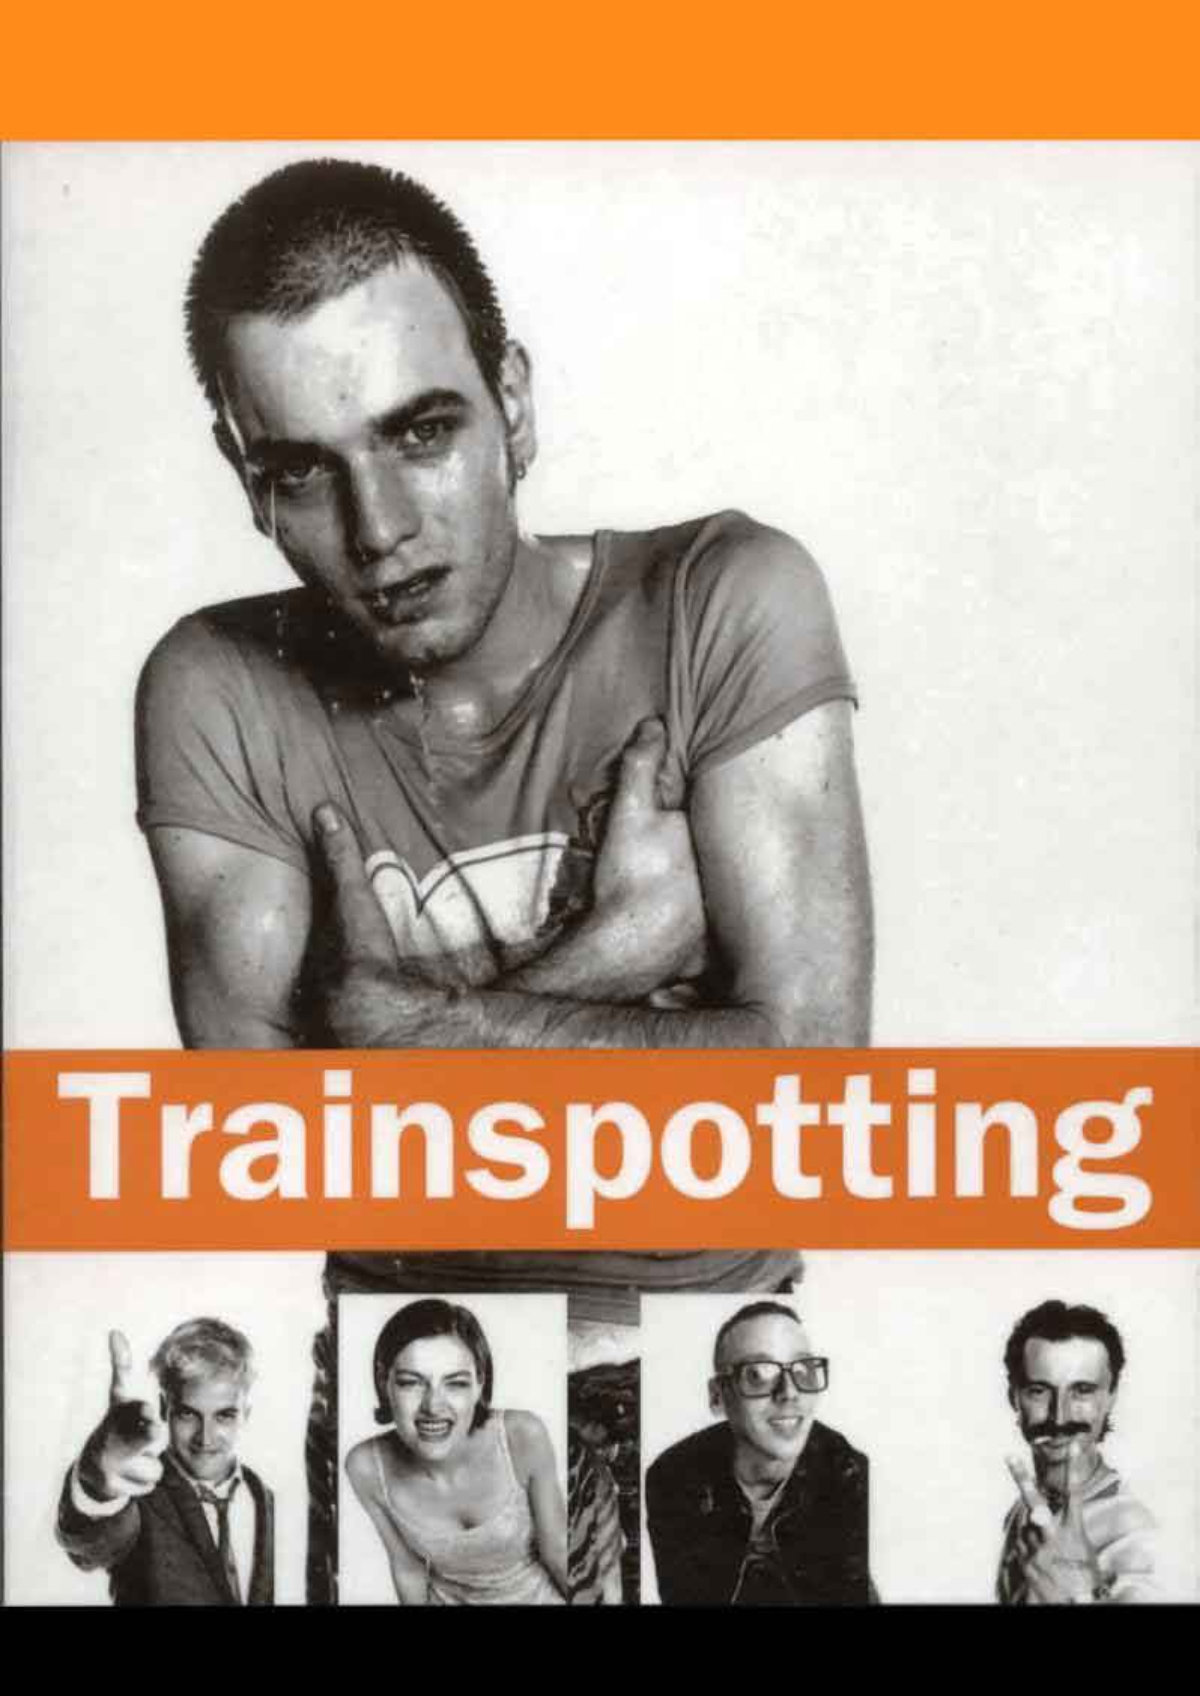 'Trainspotting' movie poster